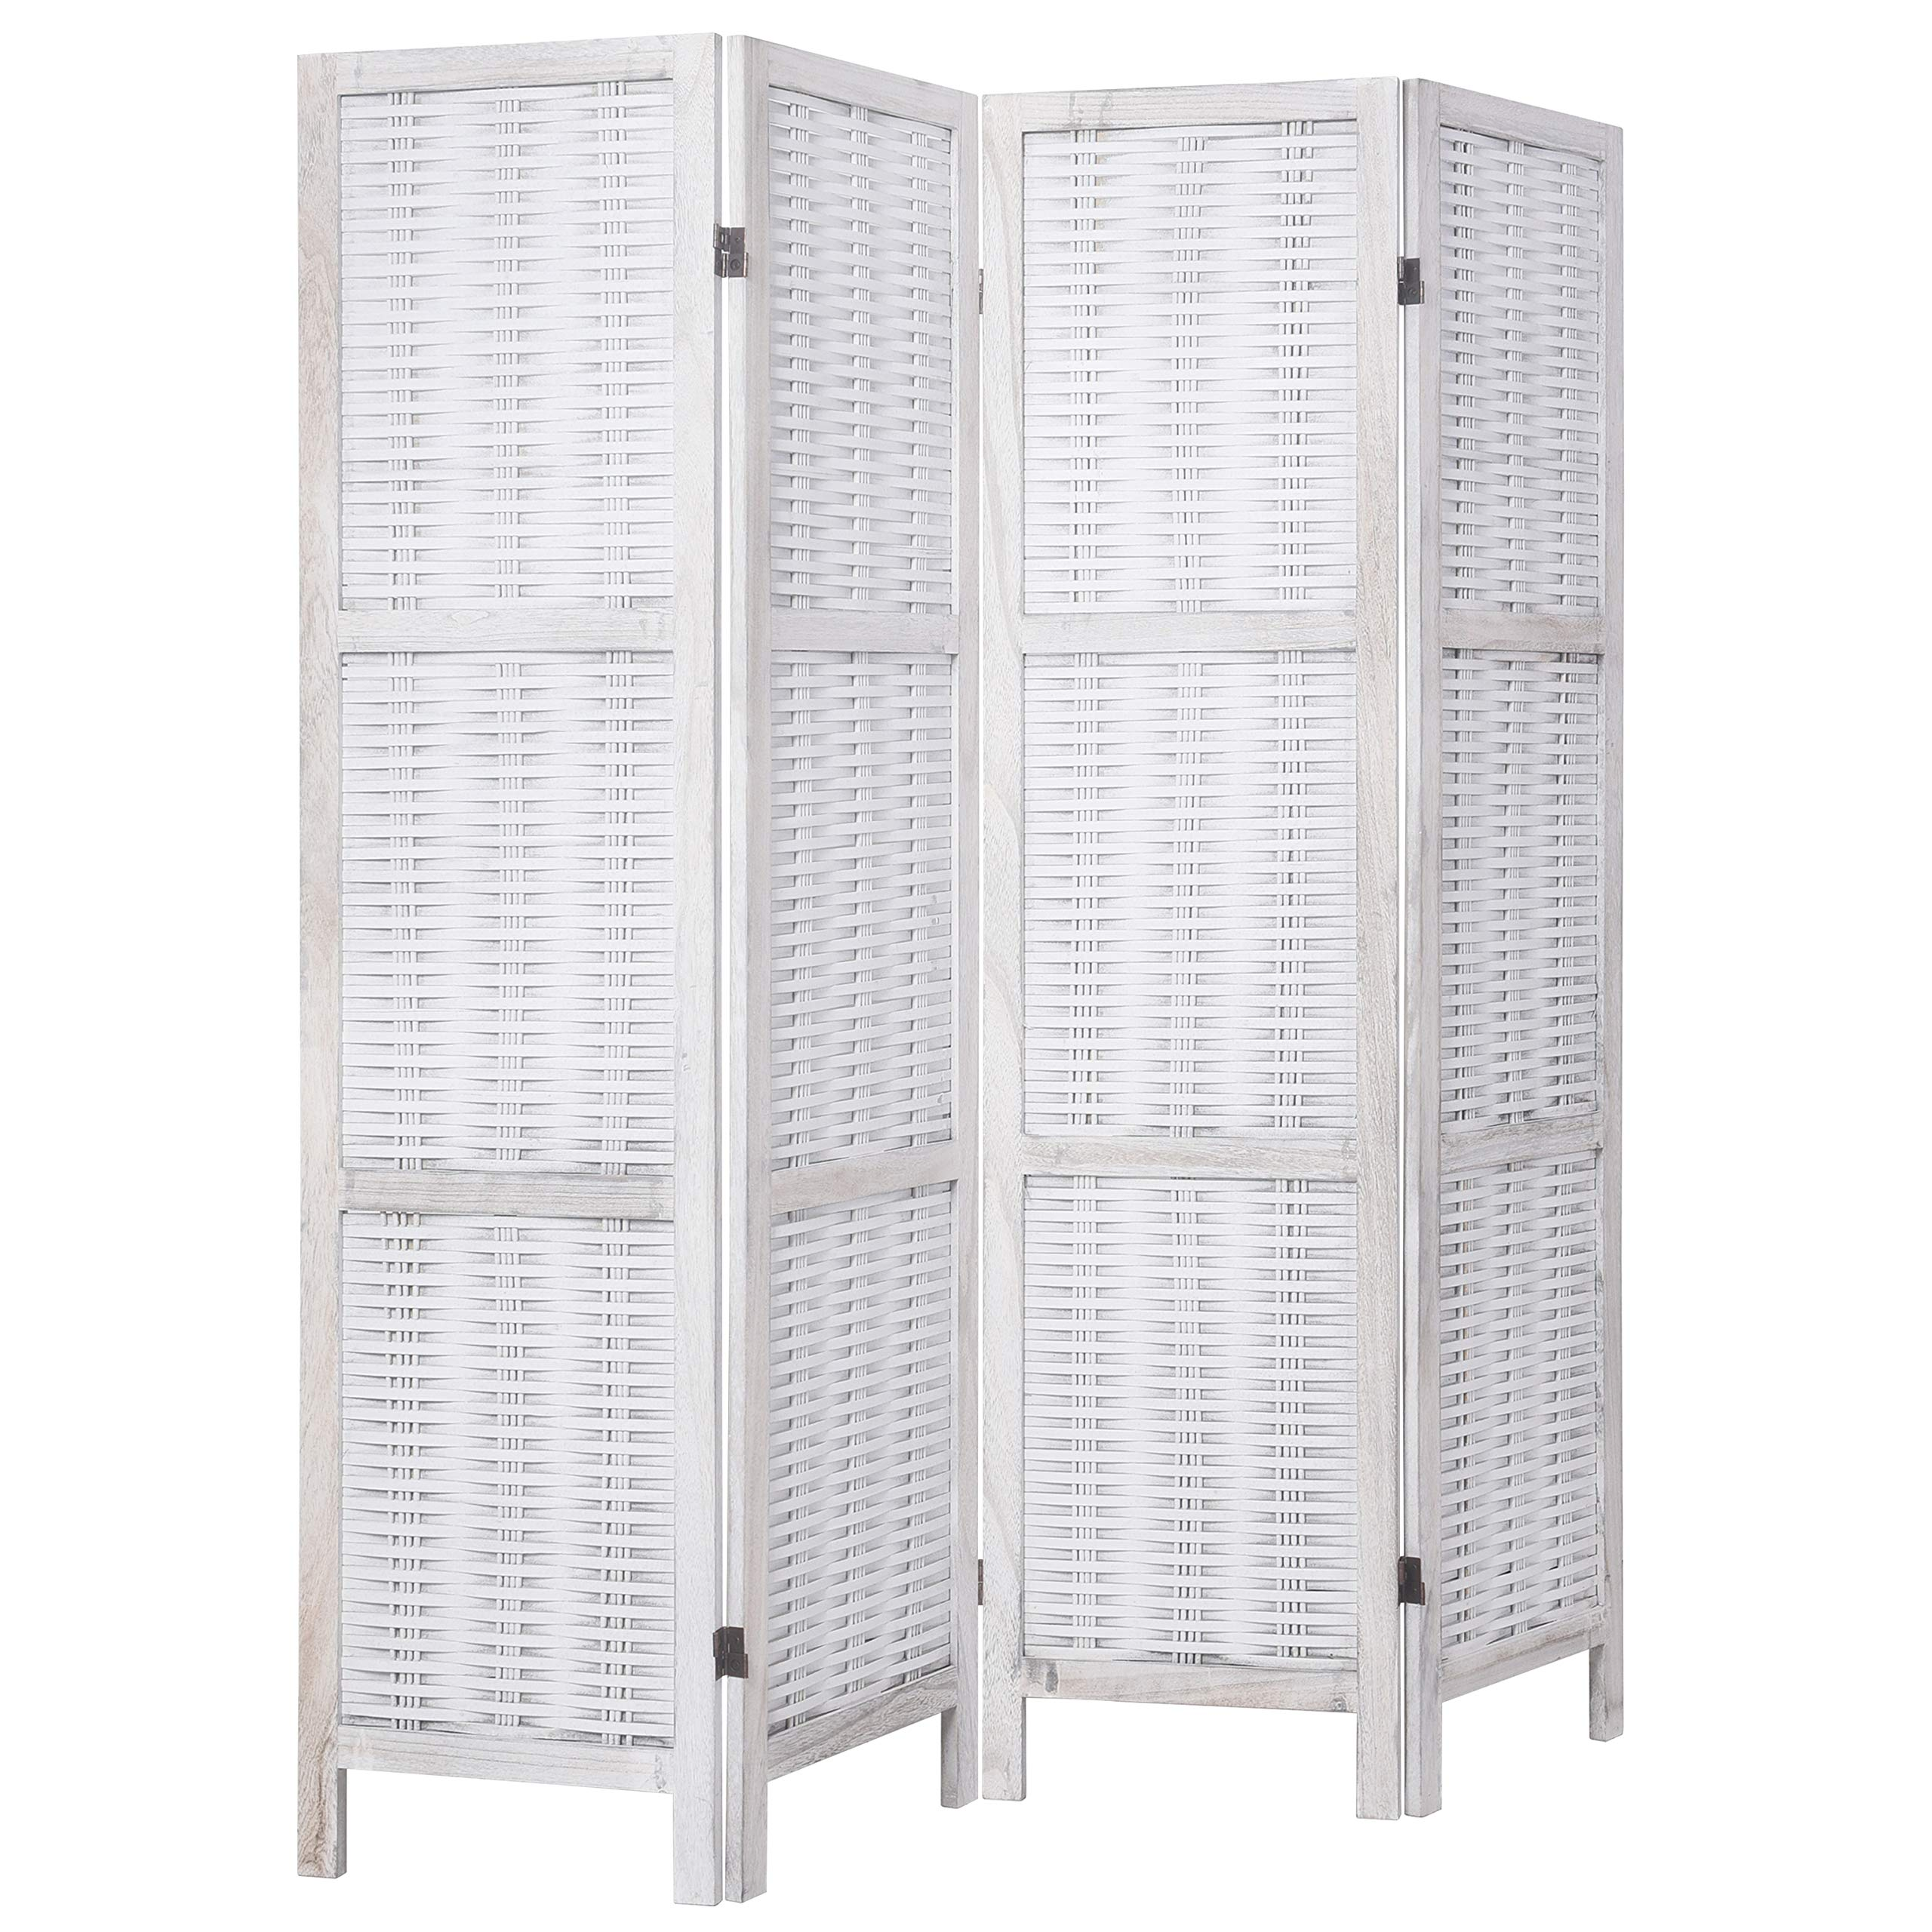 RHF 5.6ft.Tall Bamboo Woven 4 screen Panels Room Divider/4 Panels Screen Folding Privacy Partition Wall Room divider Paulownia Wood Screen, Freestanding 4 Panel 5.6-Feet, Bamboo,White by Rose Home Fashion